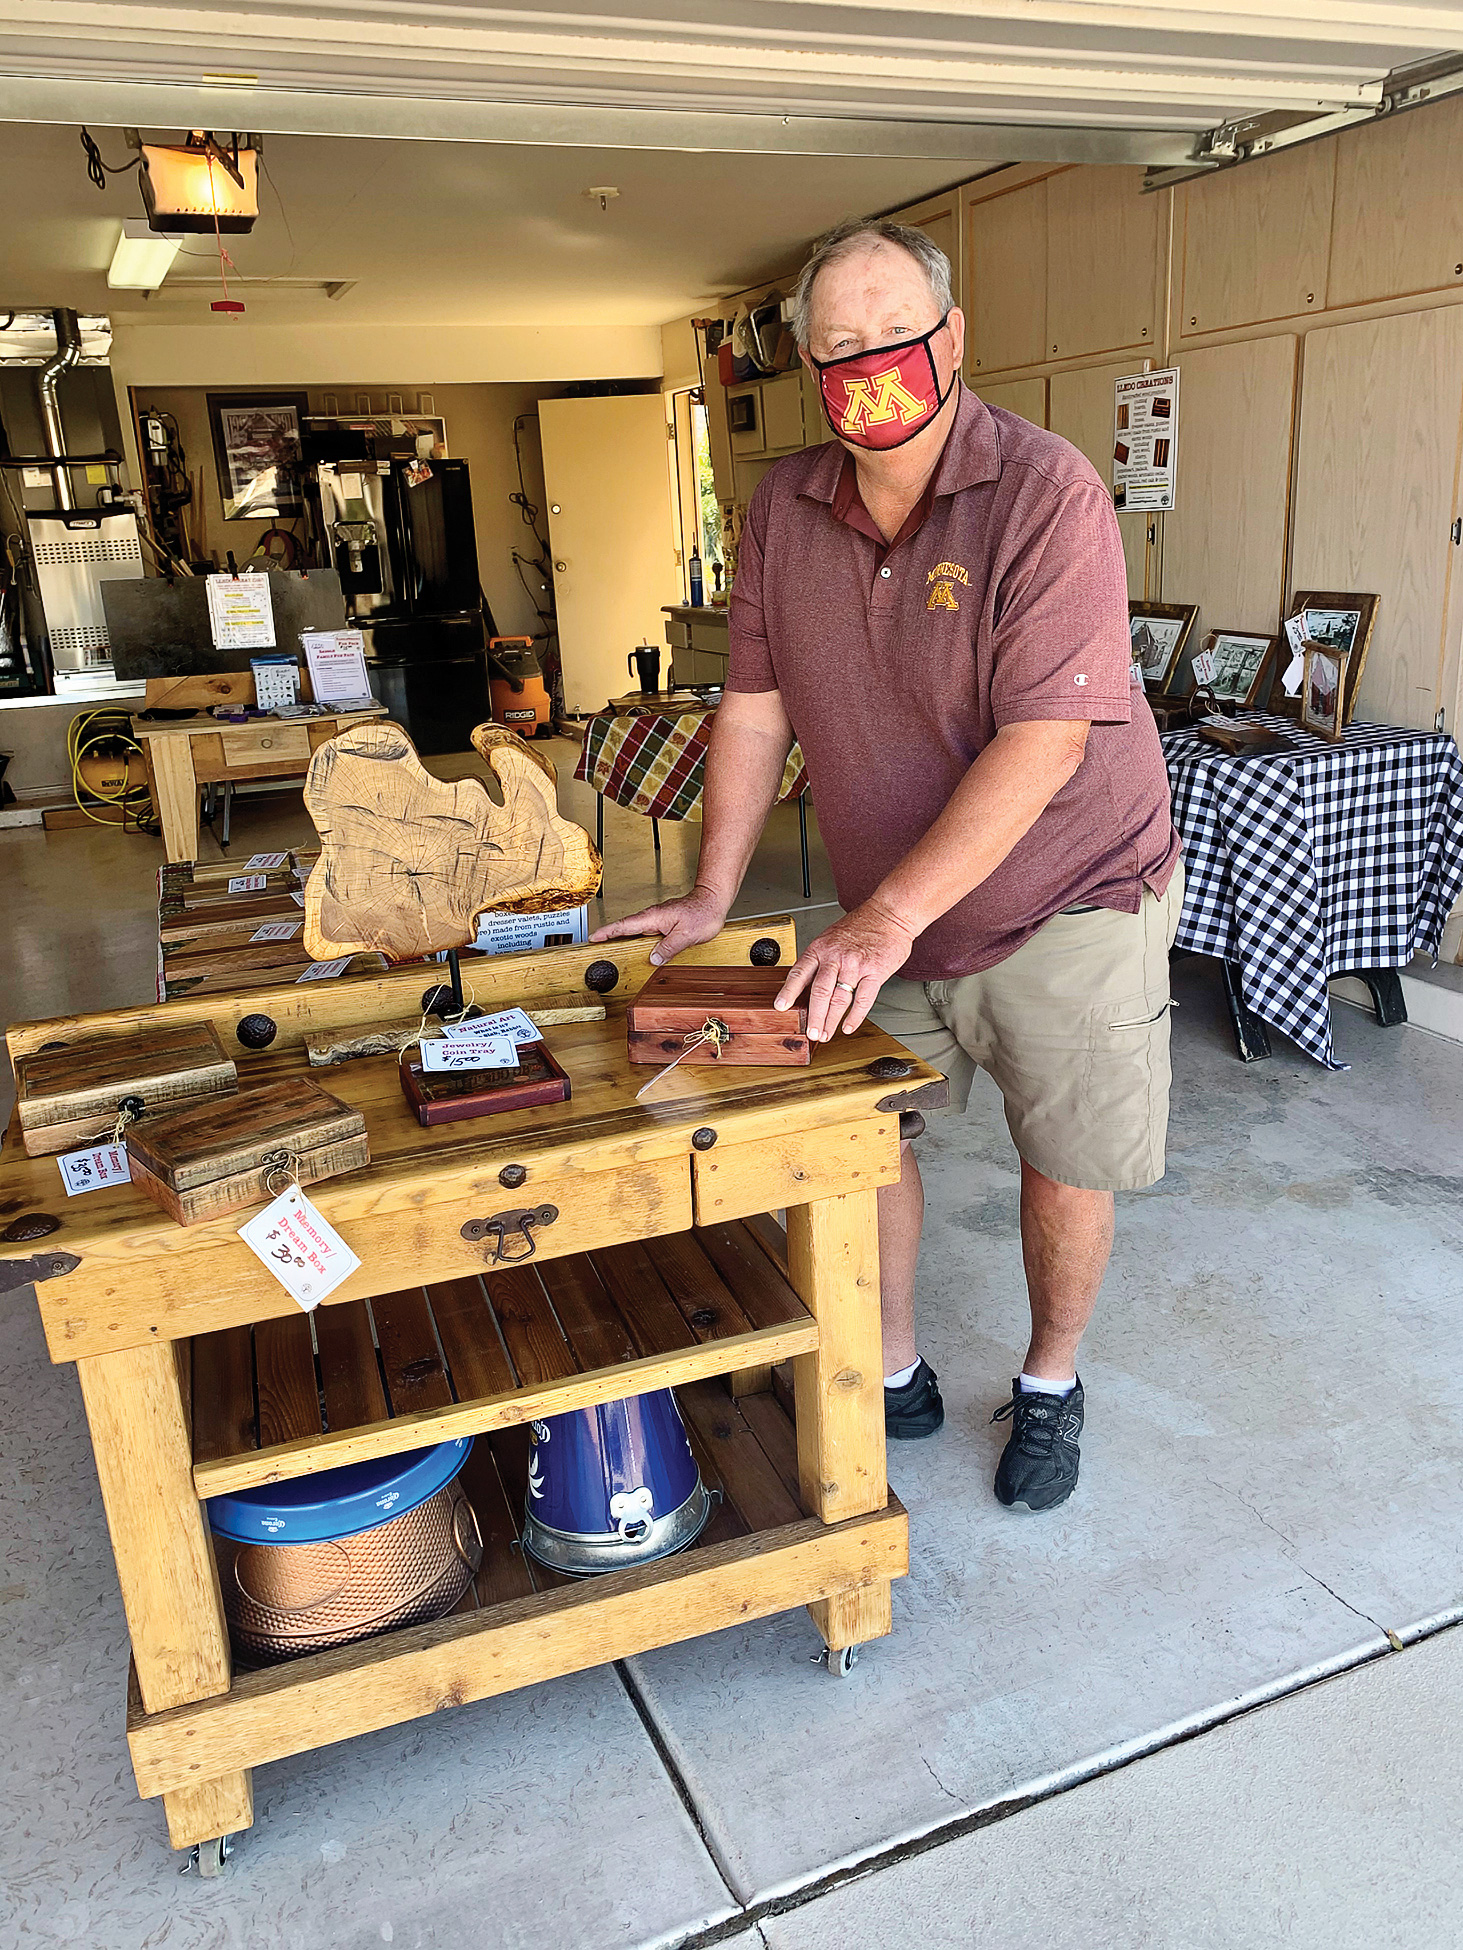 Mike O'Dell with his display of wooden creations.